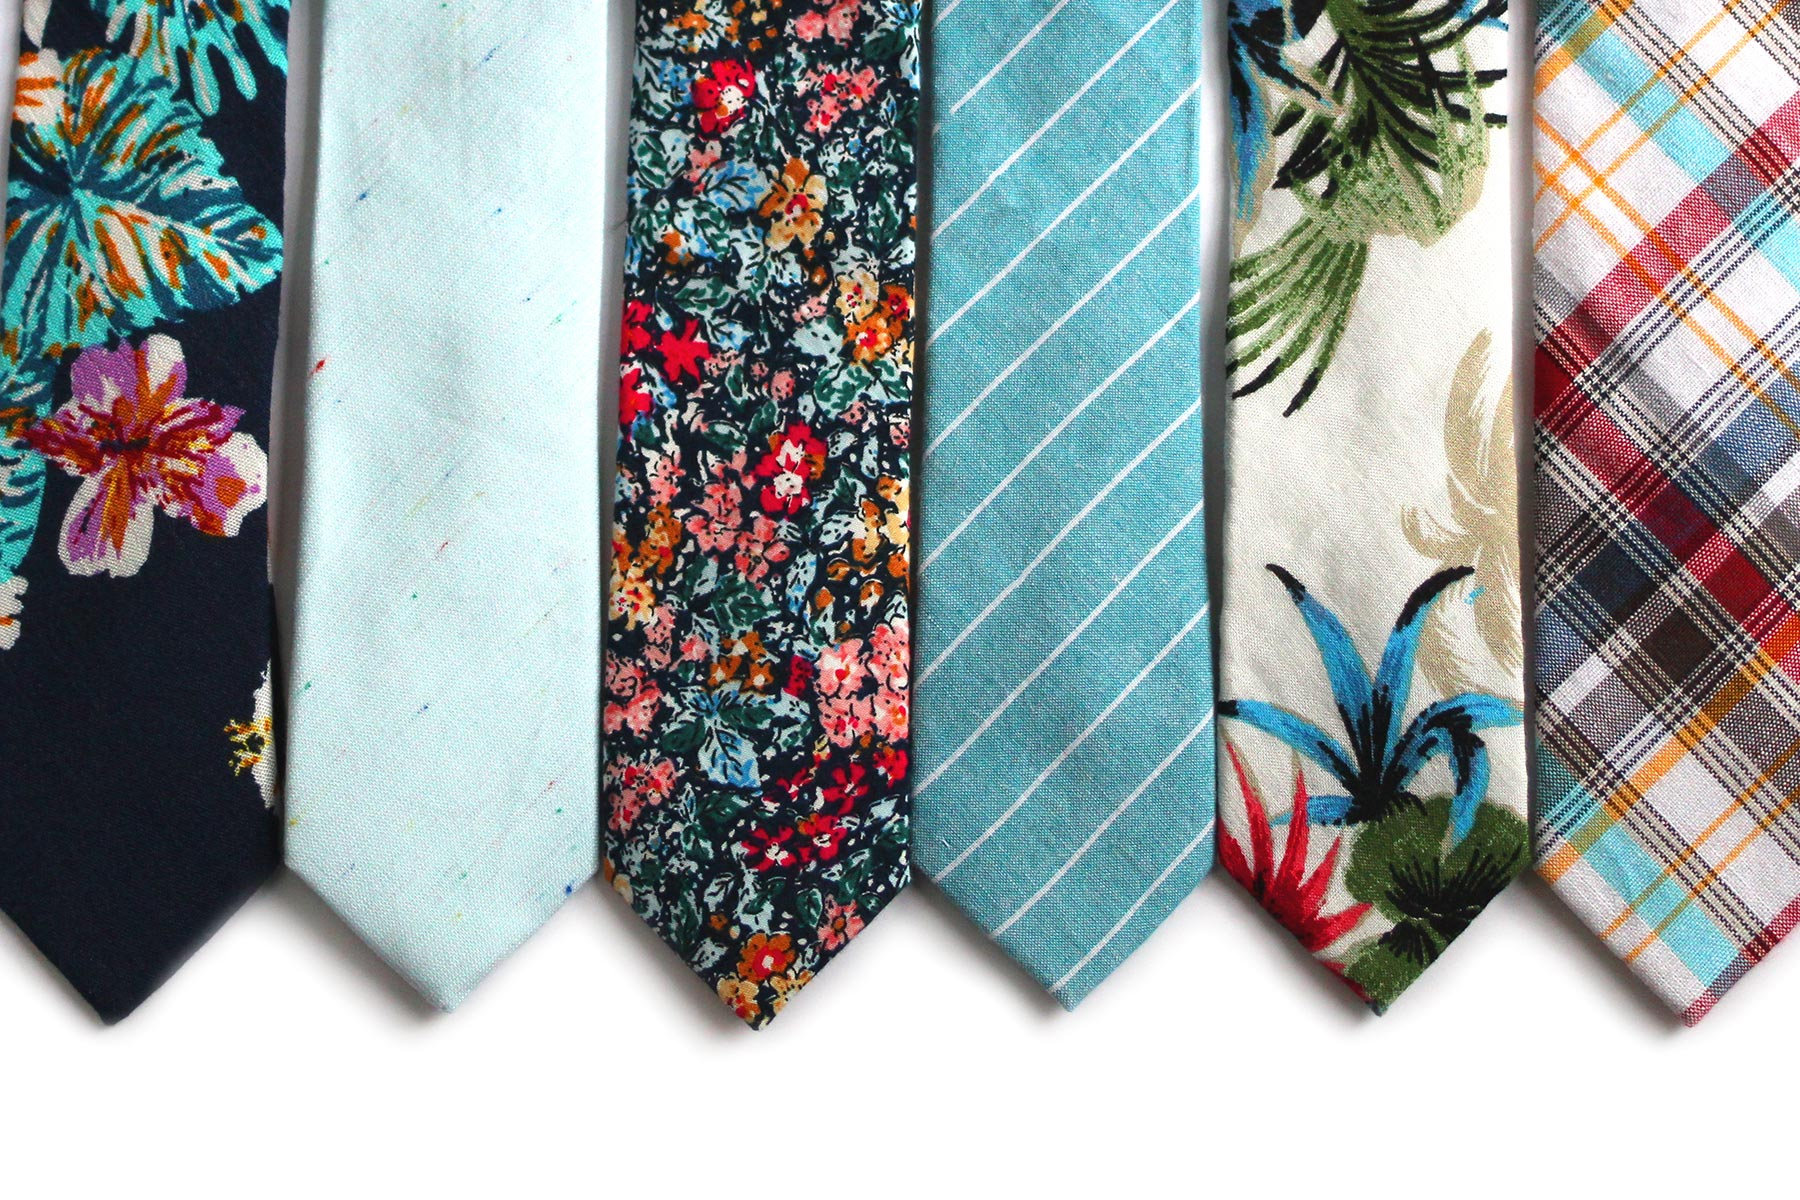 Bespoke-Fashion-Products-Neckwear-1.jpg